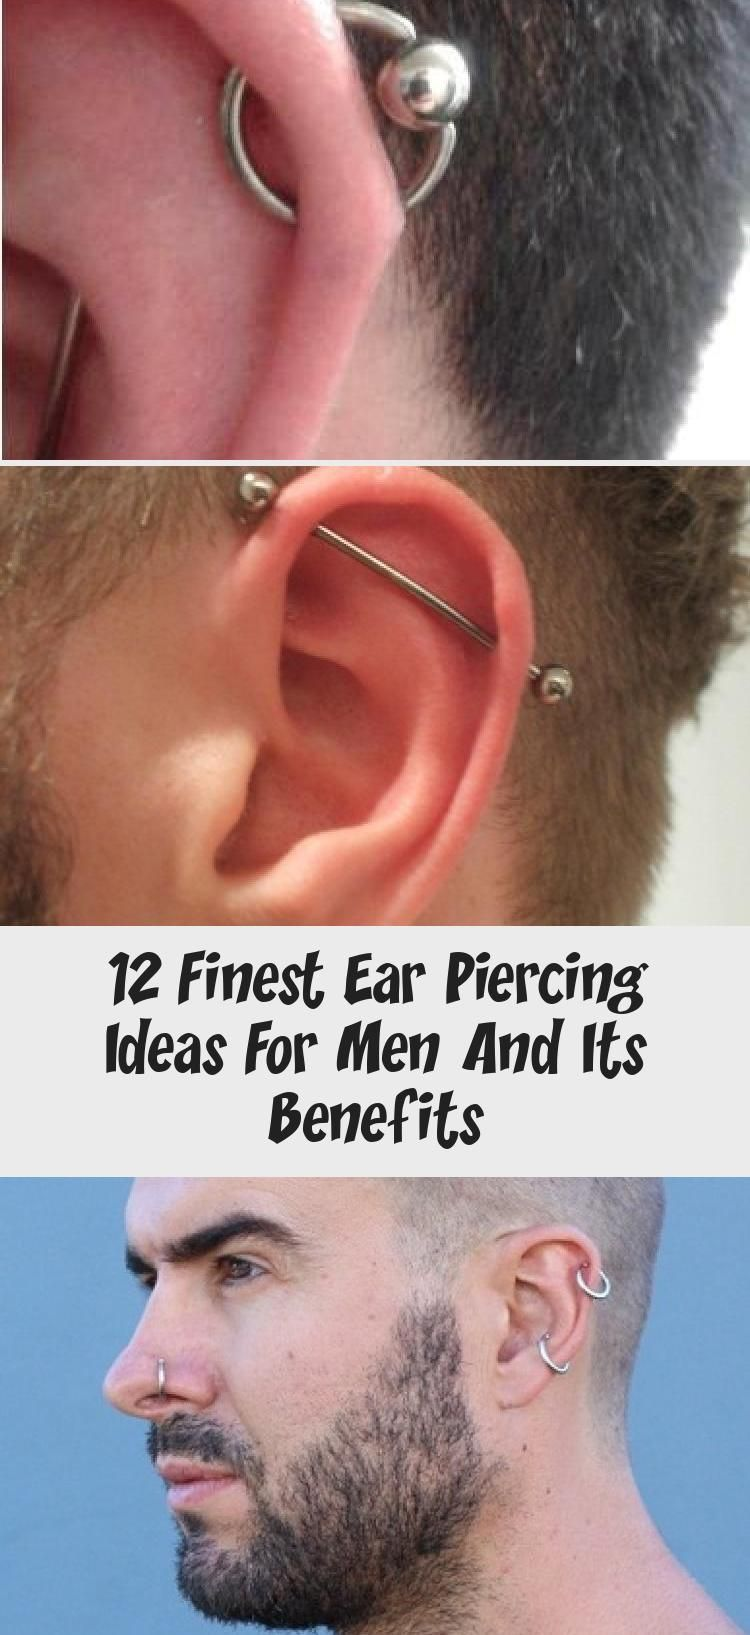 12 Finest Ear Piercing Ideas For Men And Its Benefits Body Art Tattoo Top 9 Ear Piercing For Men T In 2020 Body Suit Tattoo Cool Ear Piercings Guys Ear Piercings